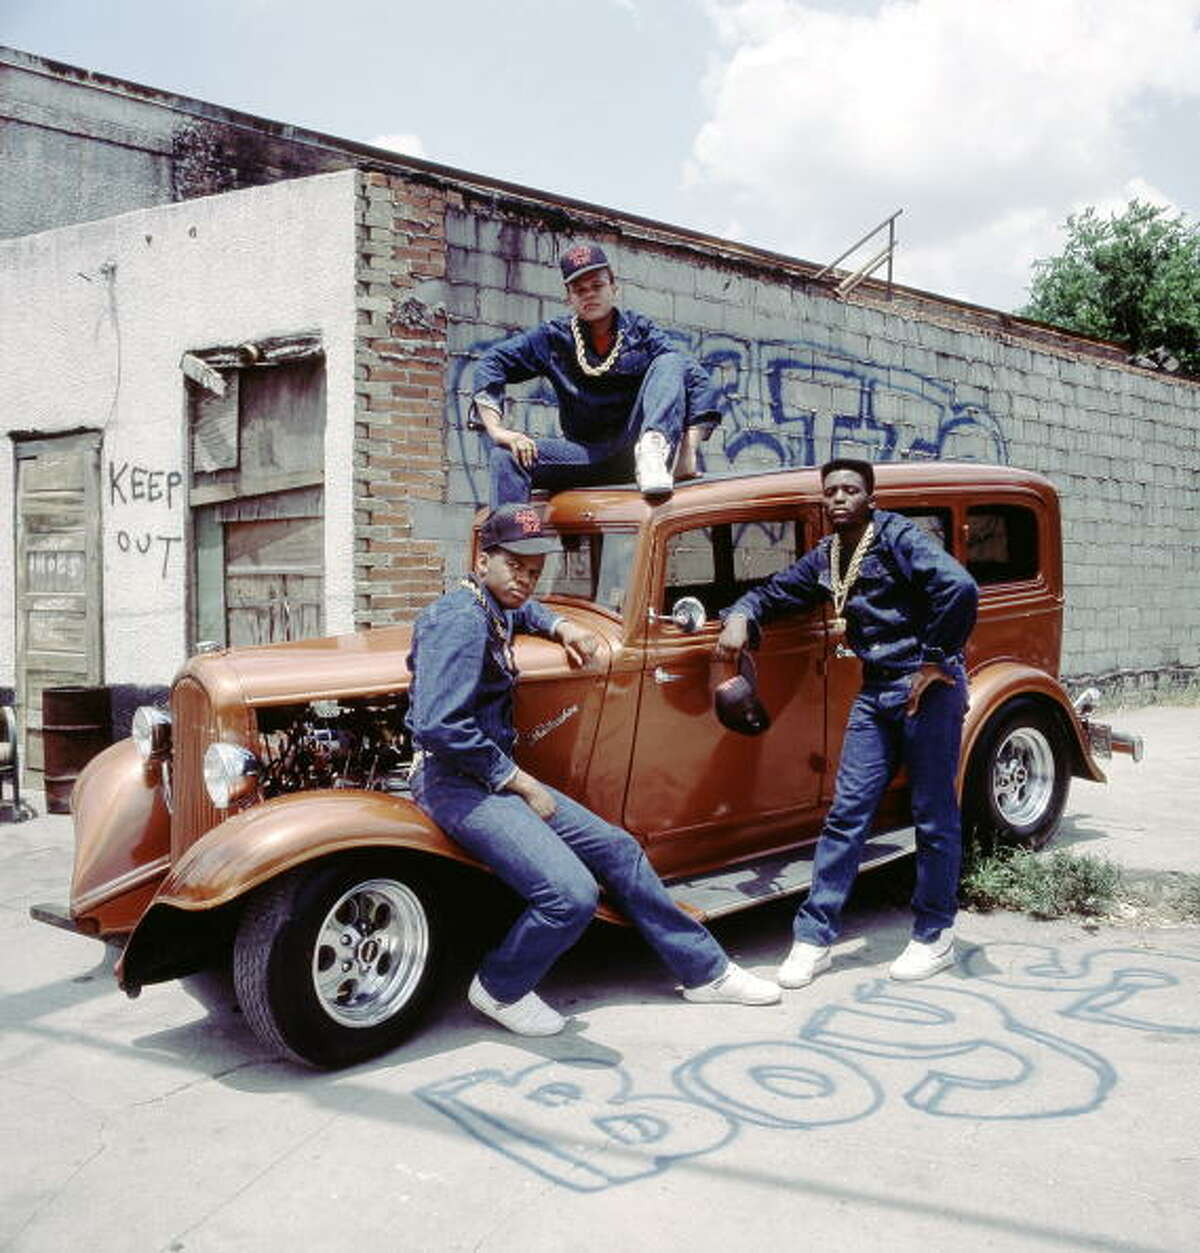 Early Ghetto Boys lineup - before they were known as Geto Boys - didn't include Scarface, Willie D or Bushwick Bill. The group -- Raheem, DJ Ready Red and Sir Rap-A-Lot -- released the single